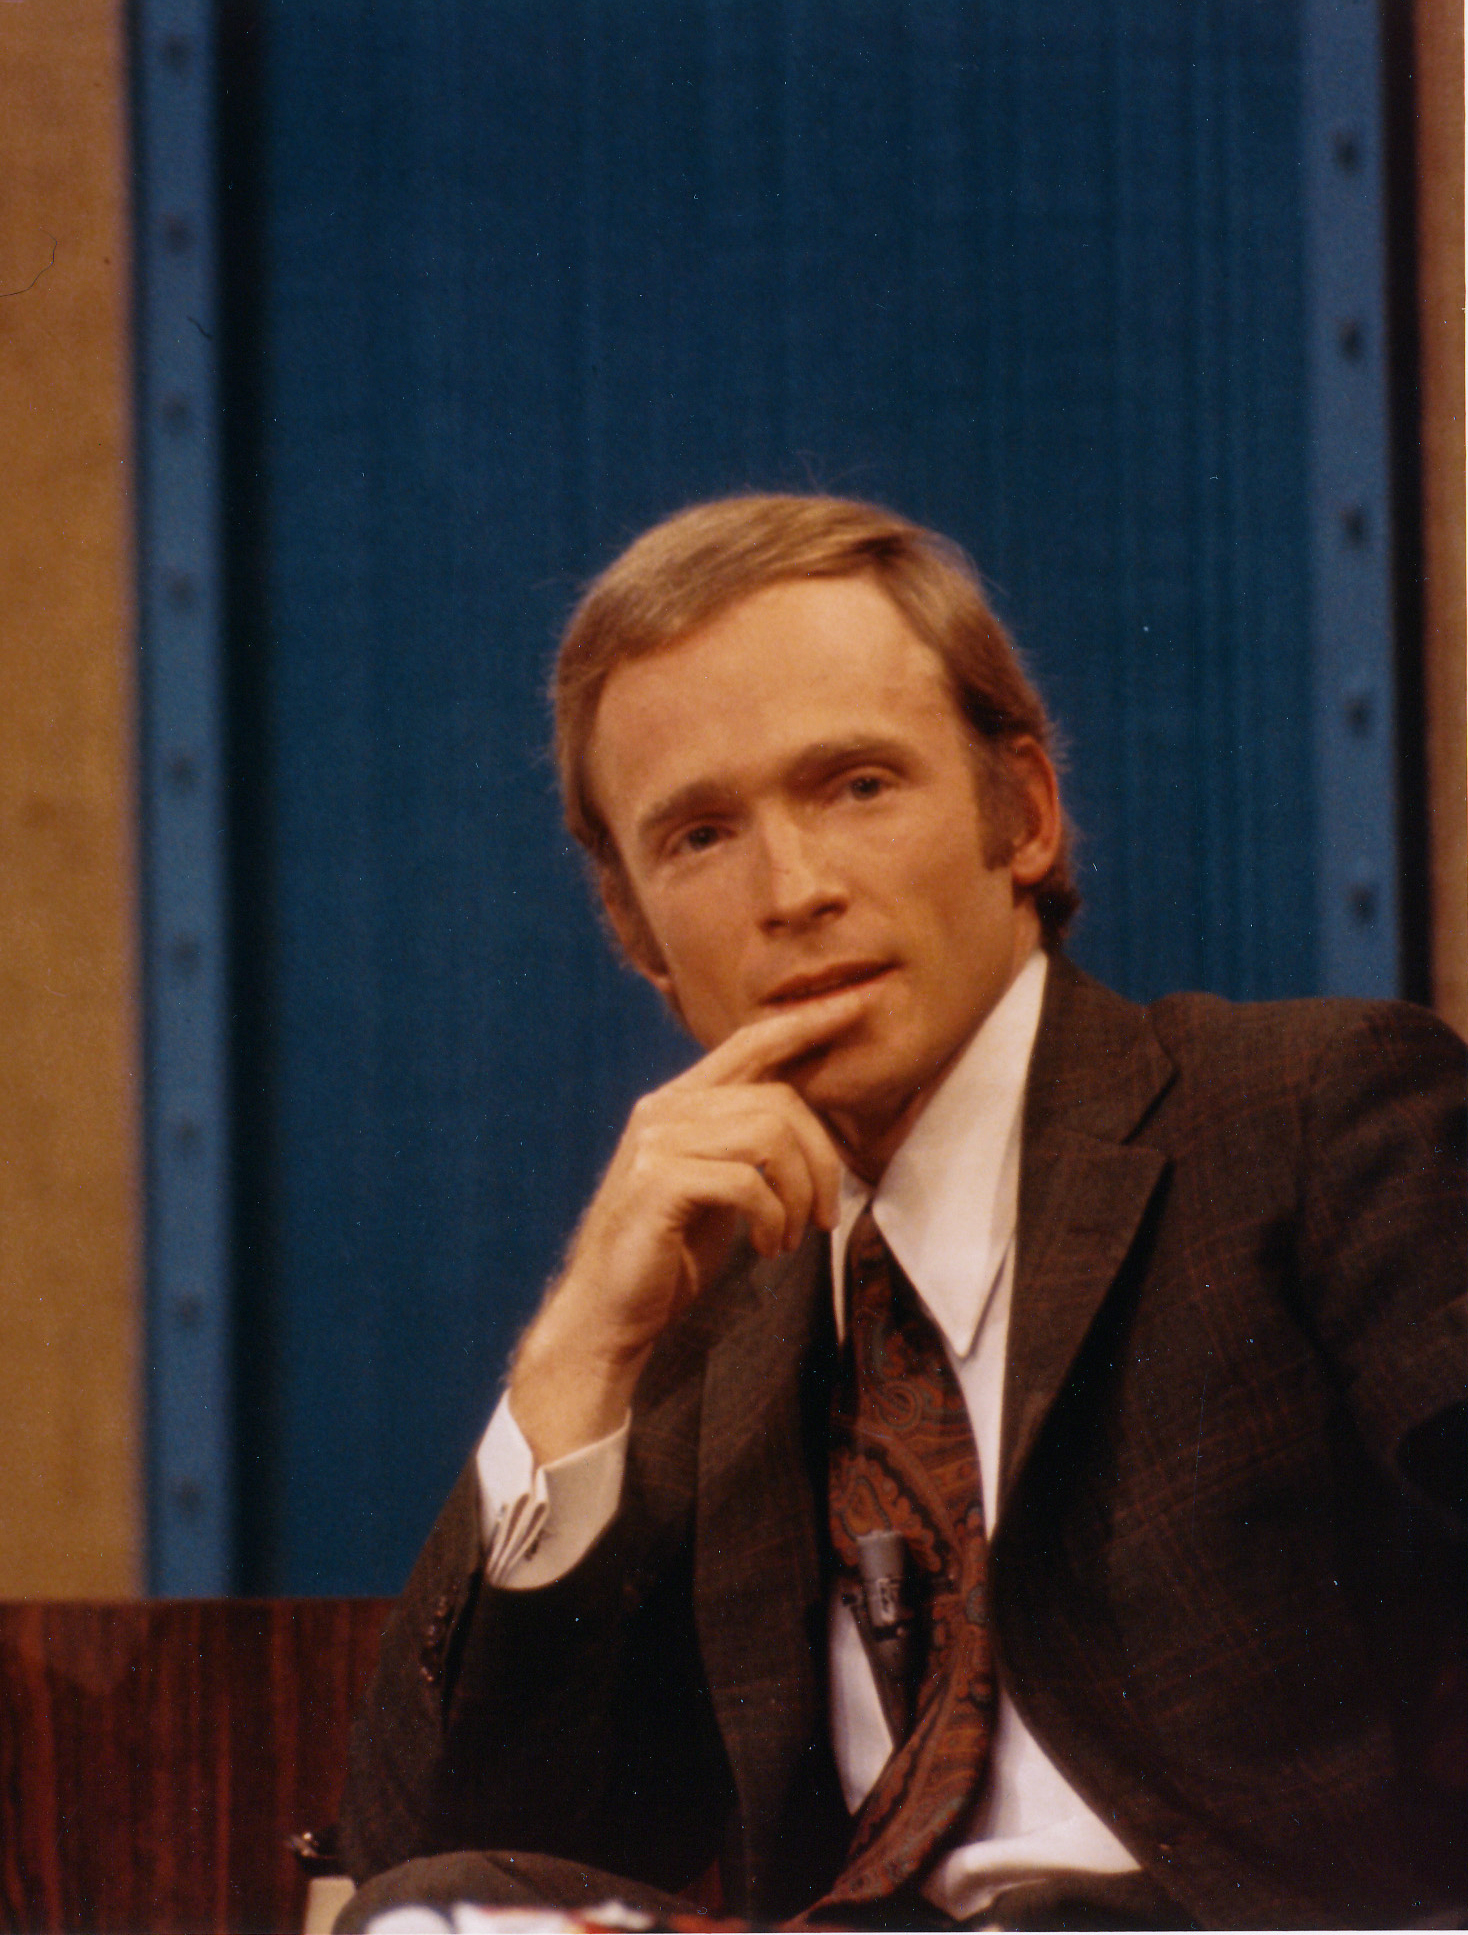 """""""Dick Cavett's Vietnam"""" Offers a Unique Window on the Vietnam War and America, airing April 27 at 10 p.m. on PBS"""